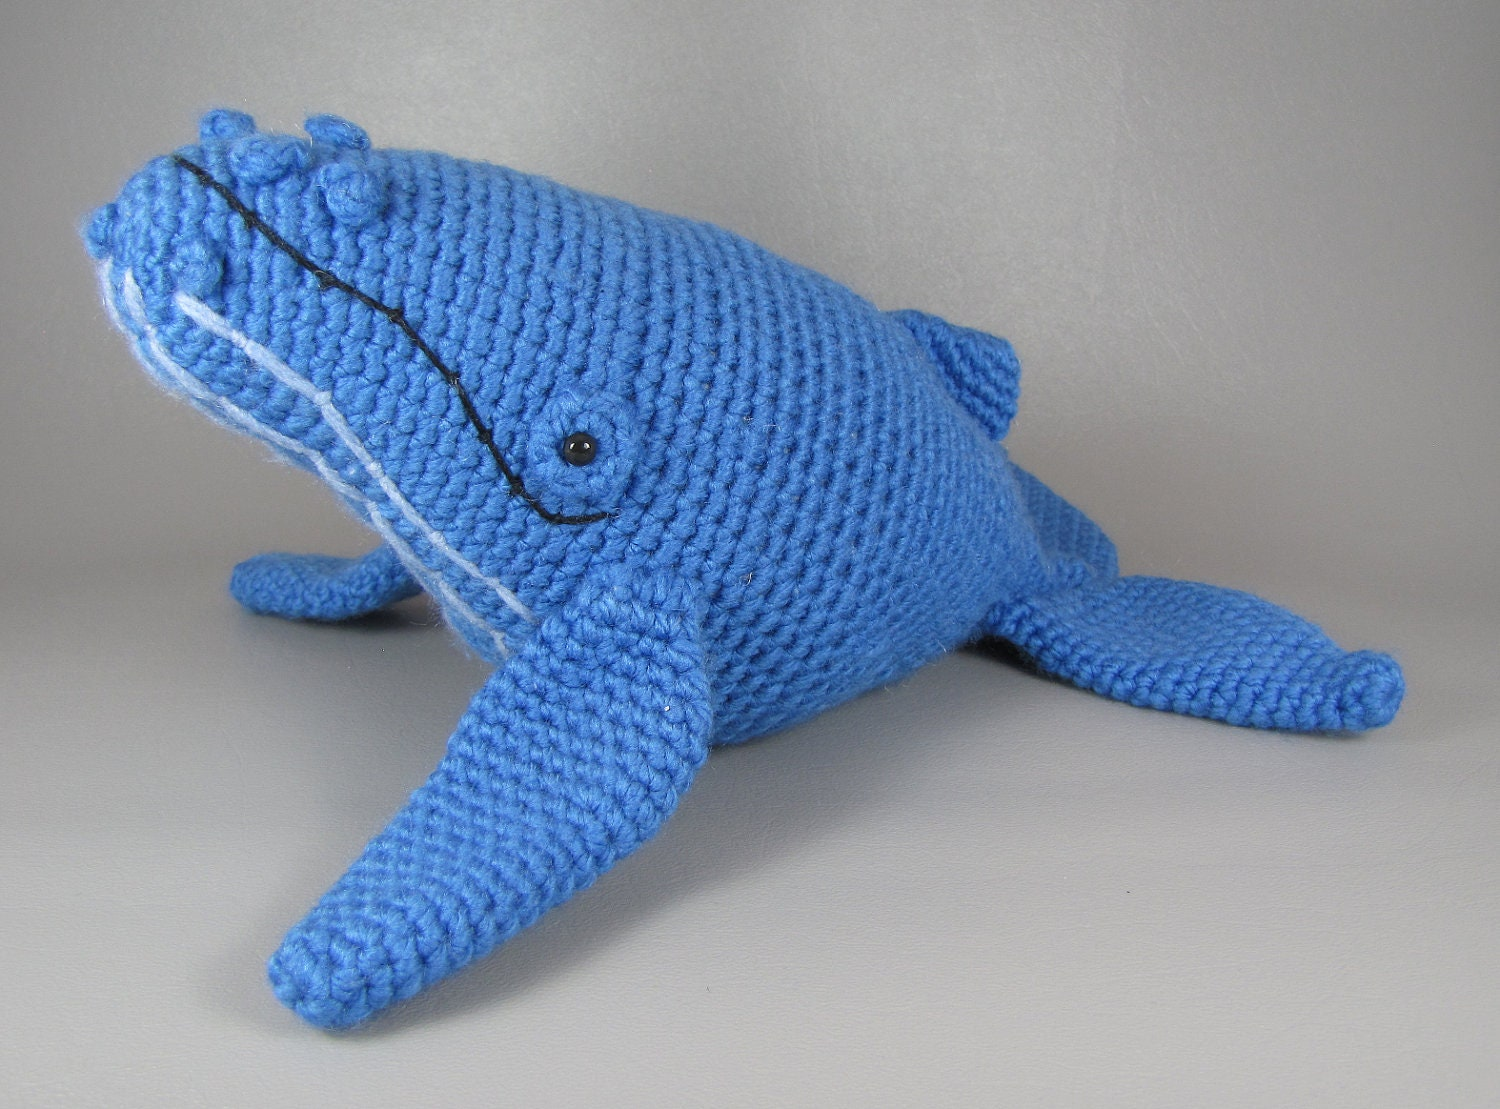 Amigurumi Christmas Ornaments Patterns : Humpback Whale PDF amigurumi crochet pattern